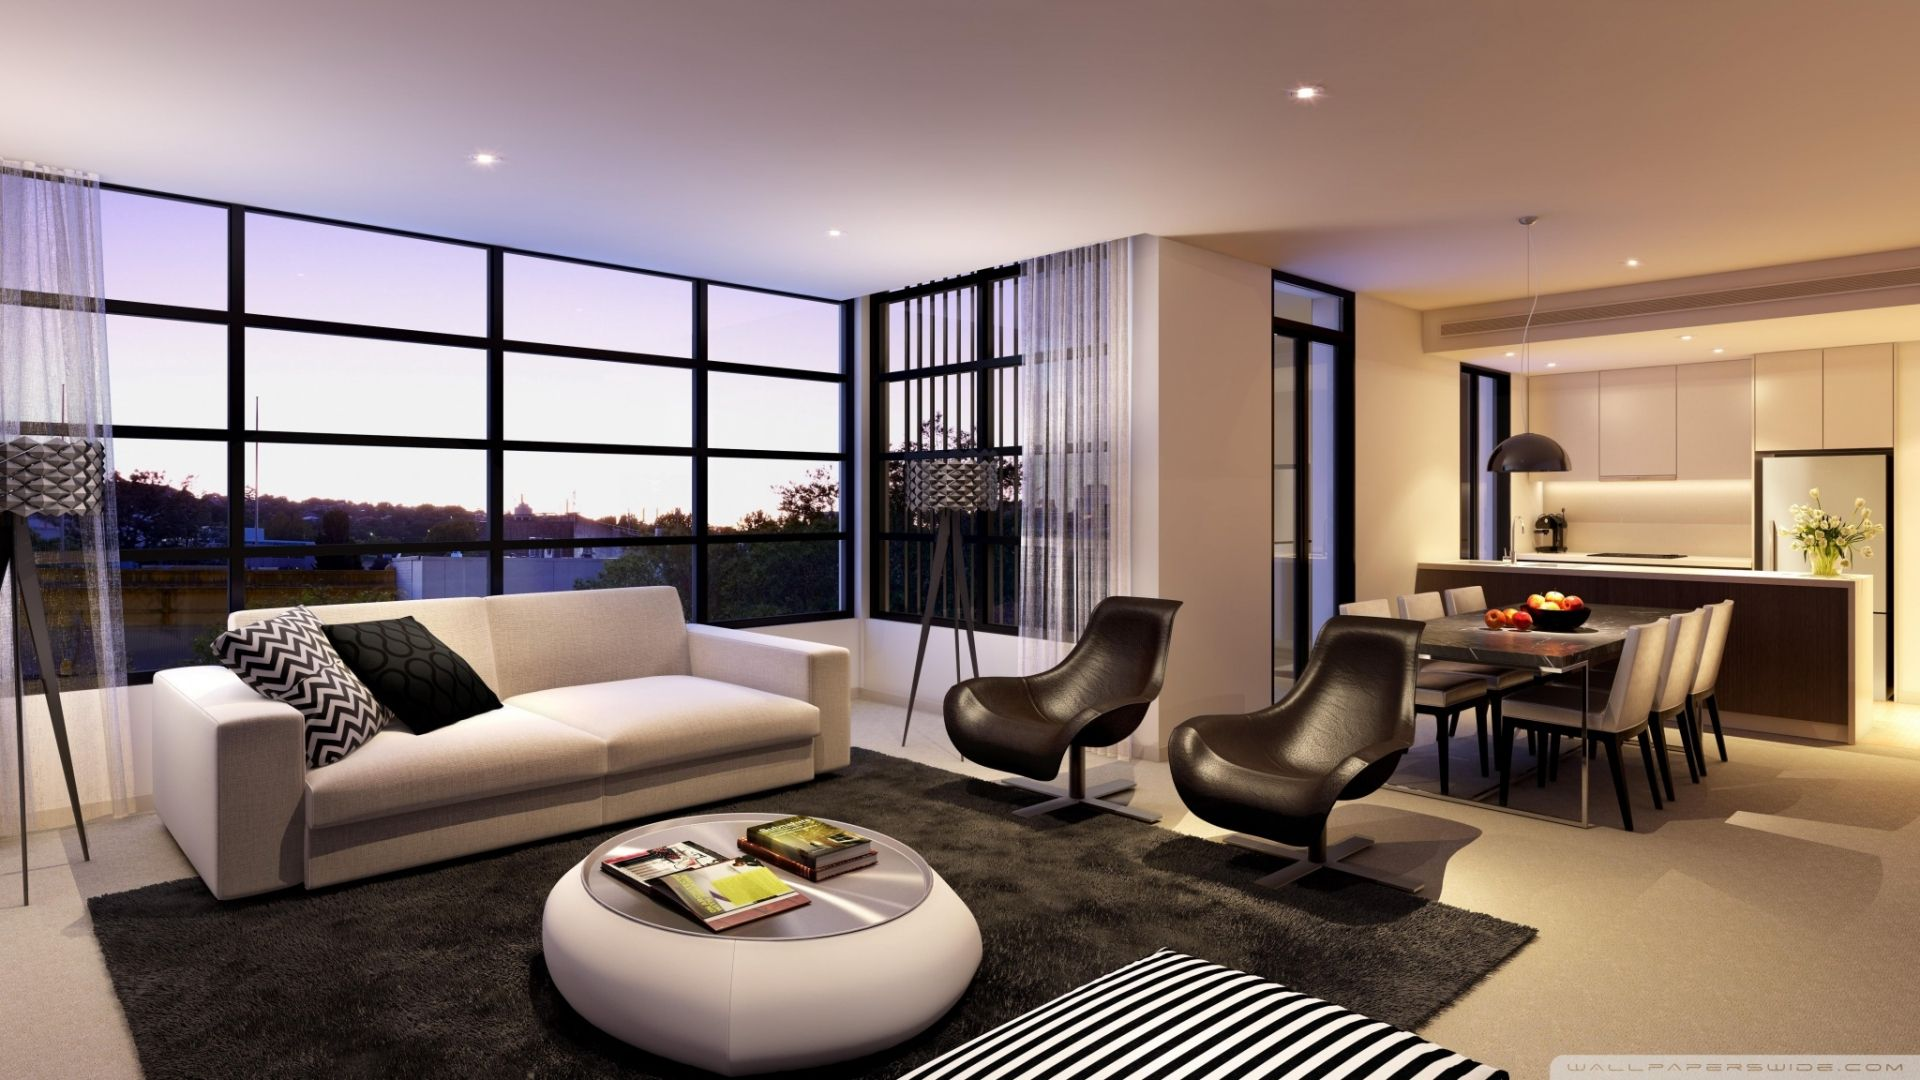 Living Room Design Is A Fantastic Hd Wallpaper For Your Pc Or Mac